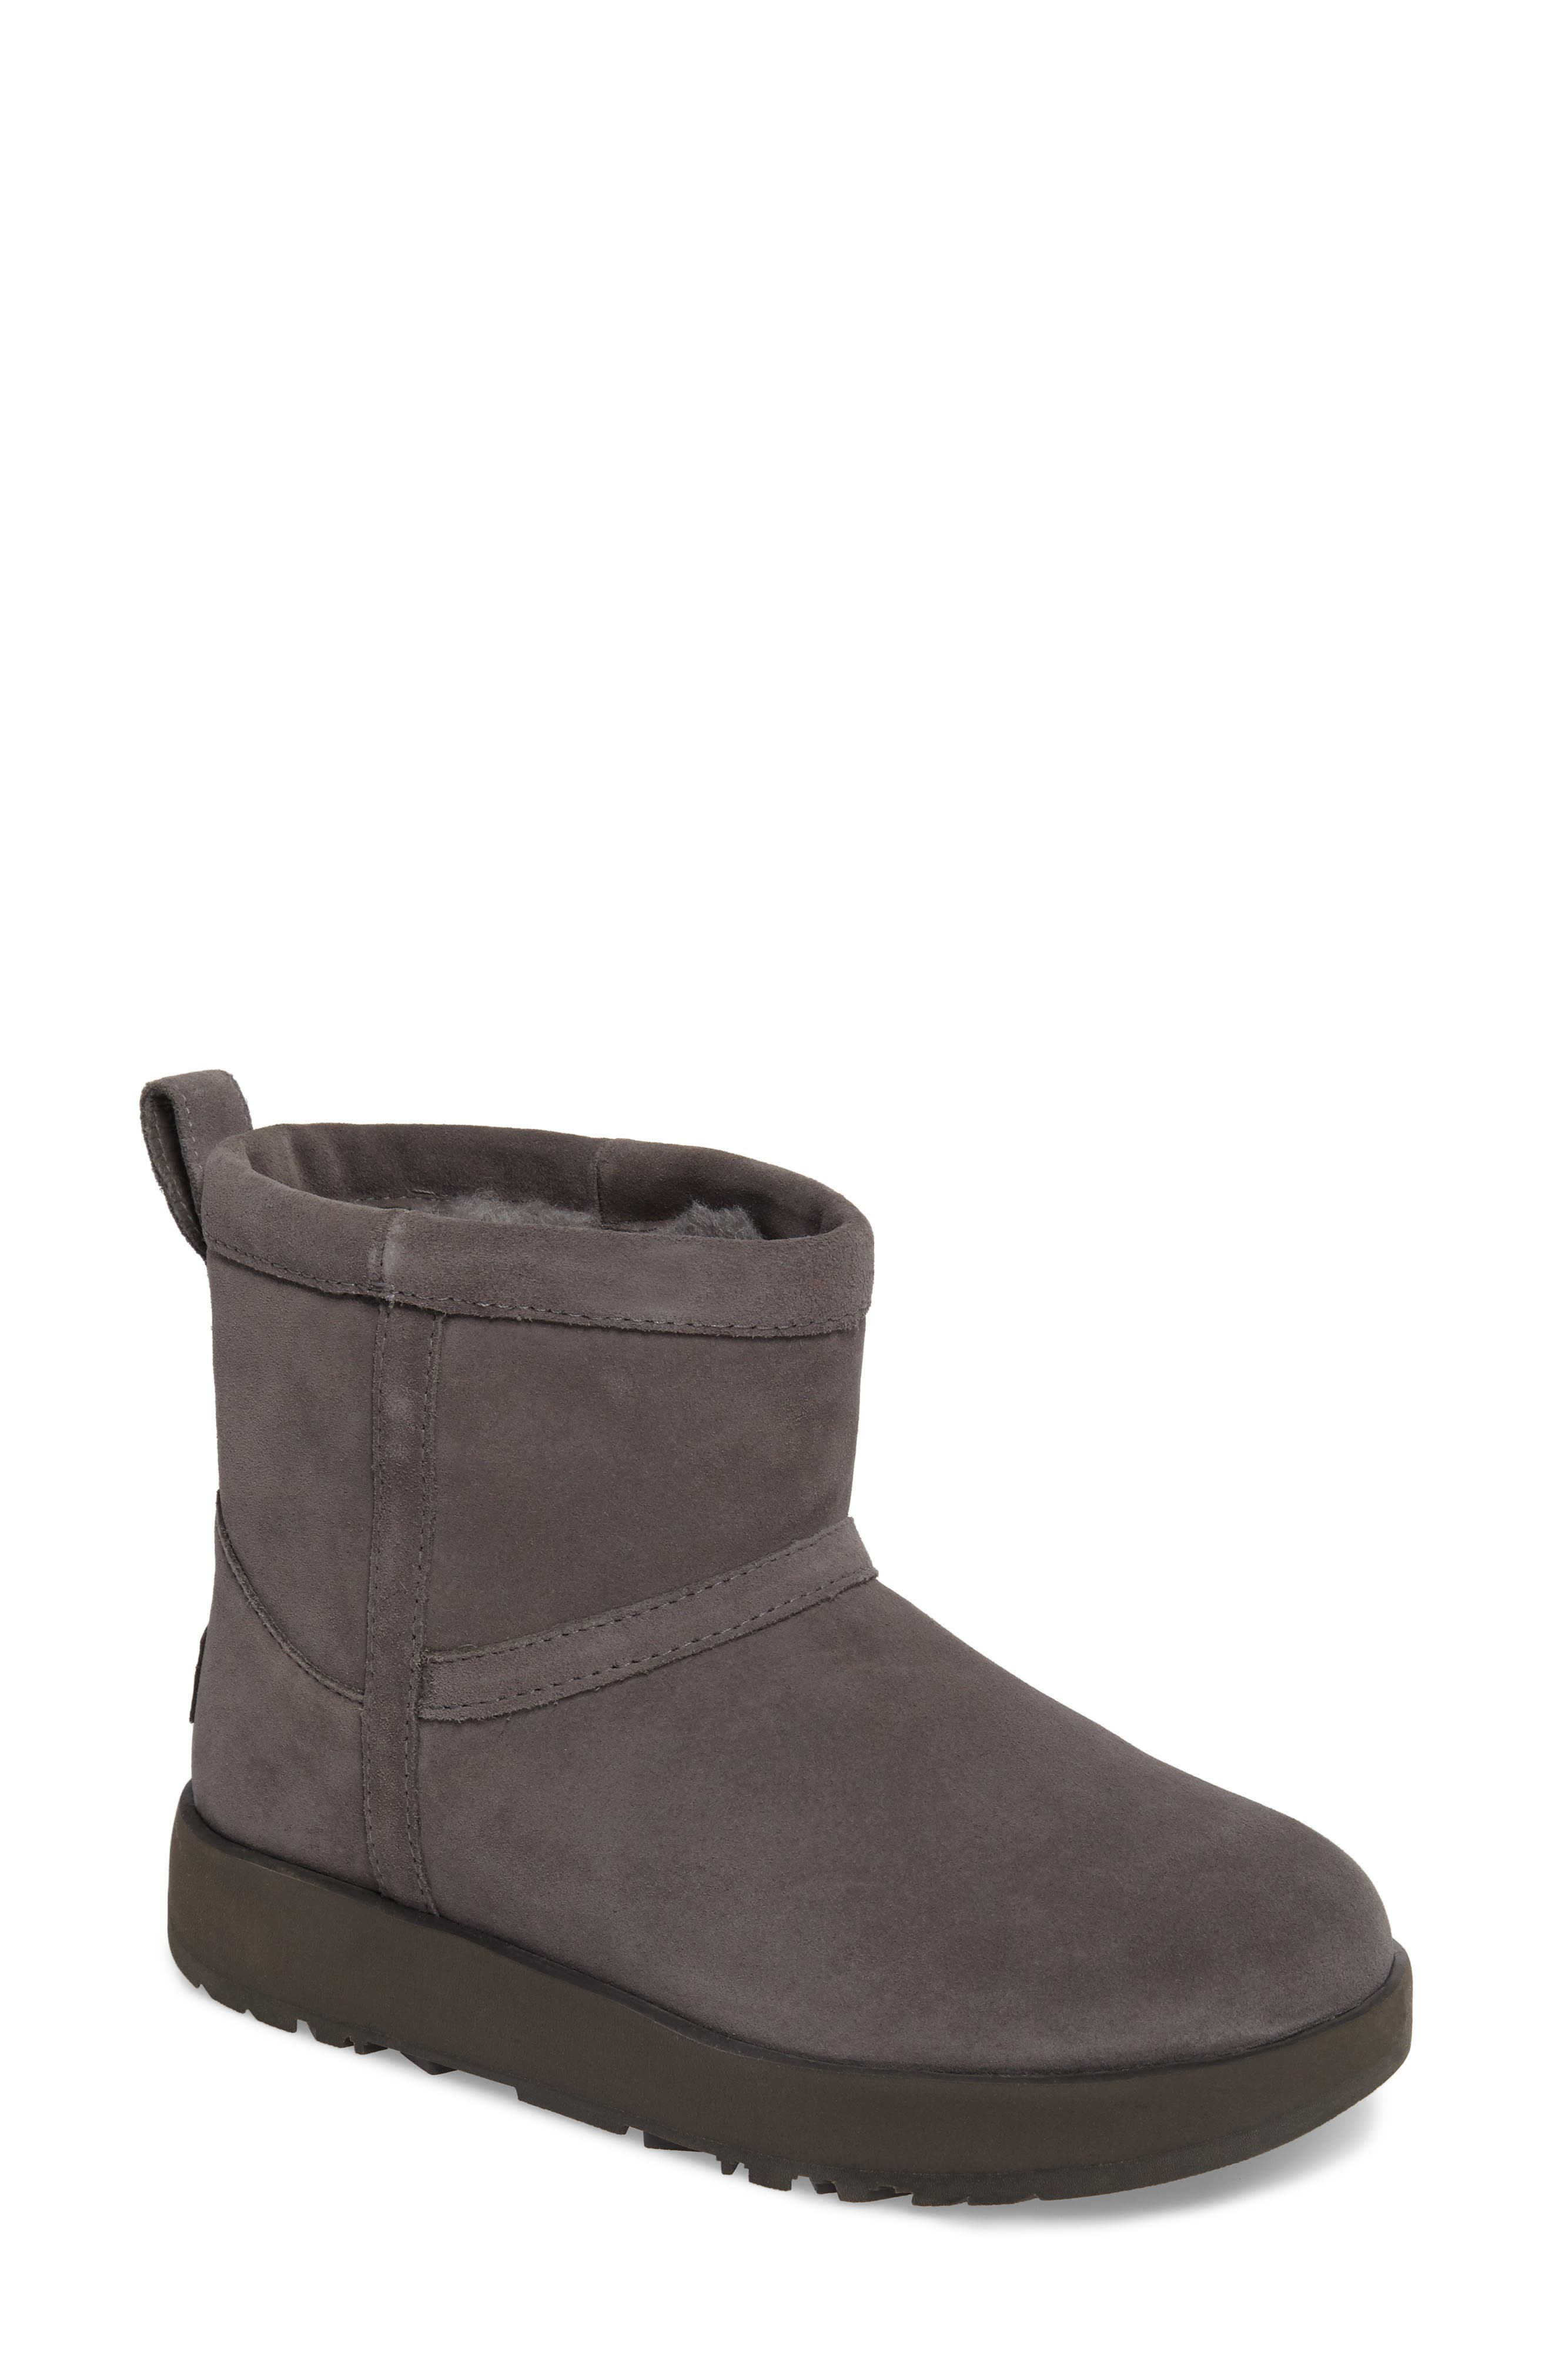 493d2eaba60 Nike Suede Womens Snow Boots Suede Leather Boots For Women